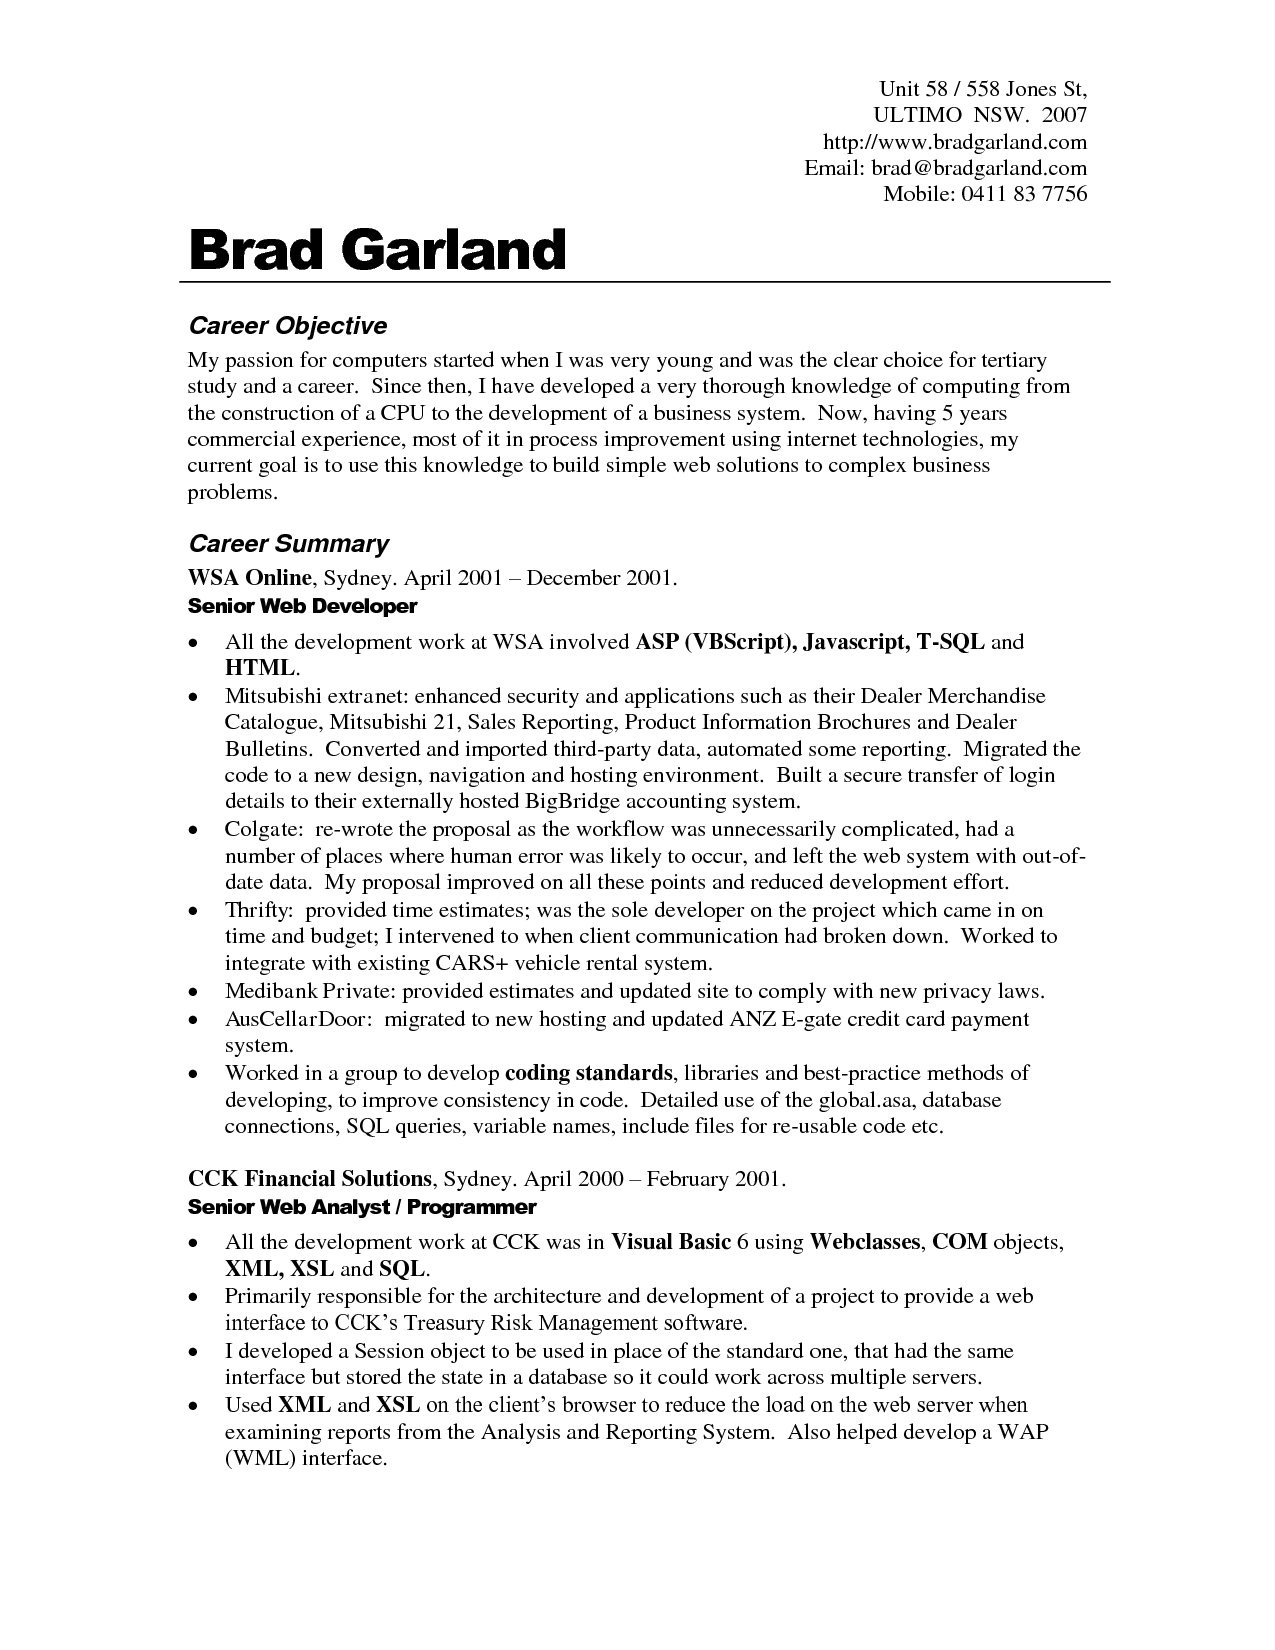 resume objectives examples best templateresume objective examples